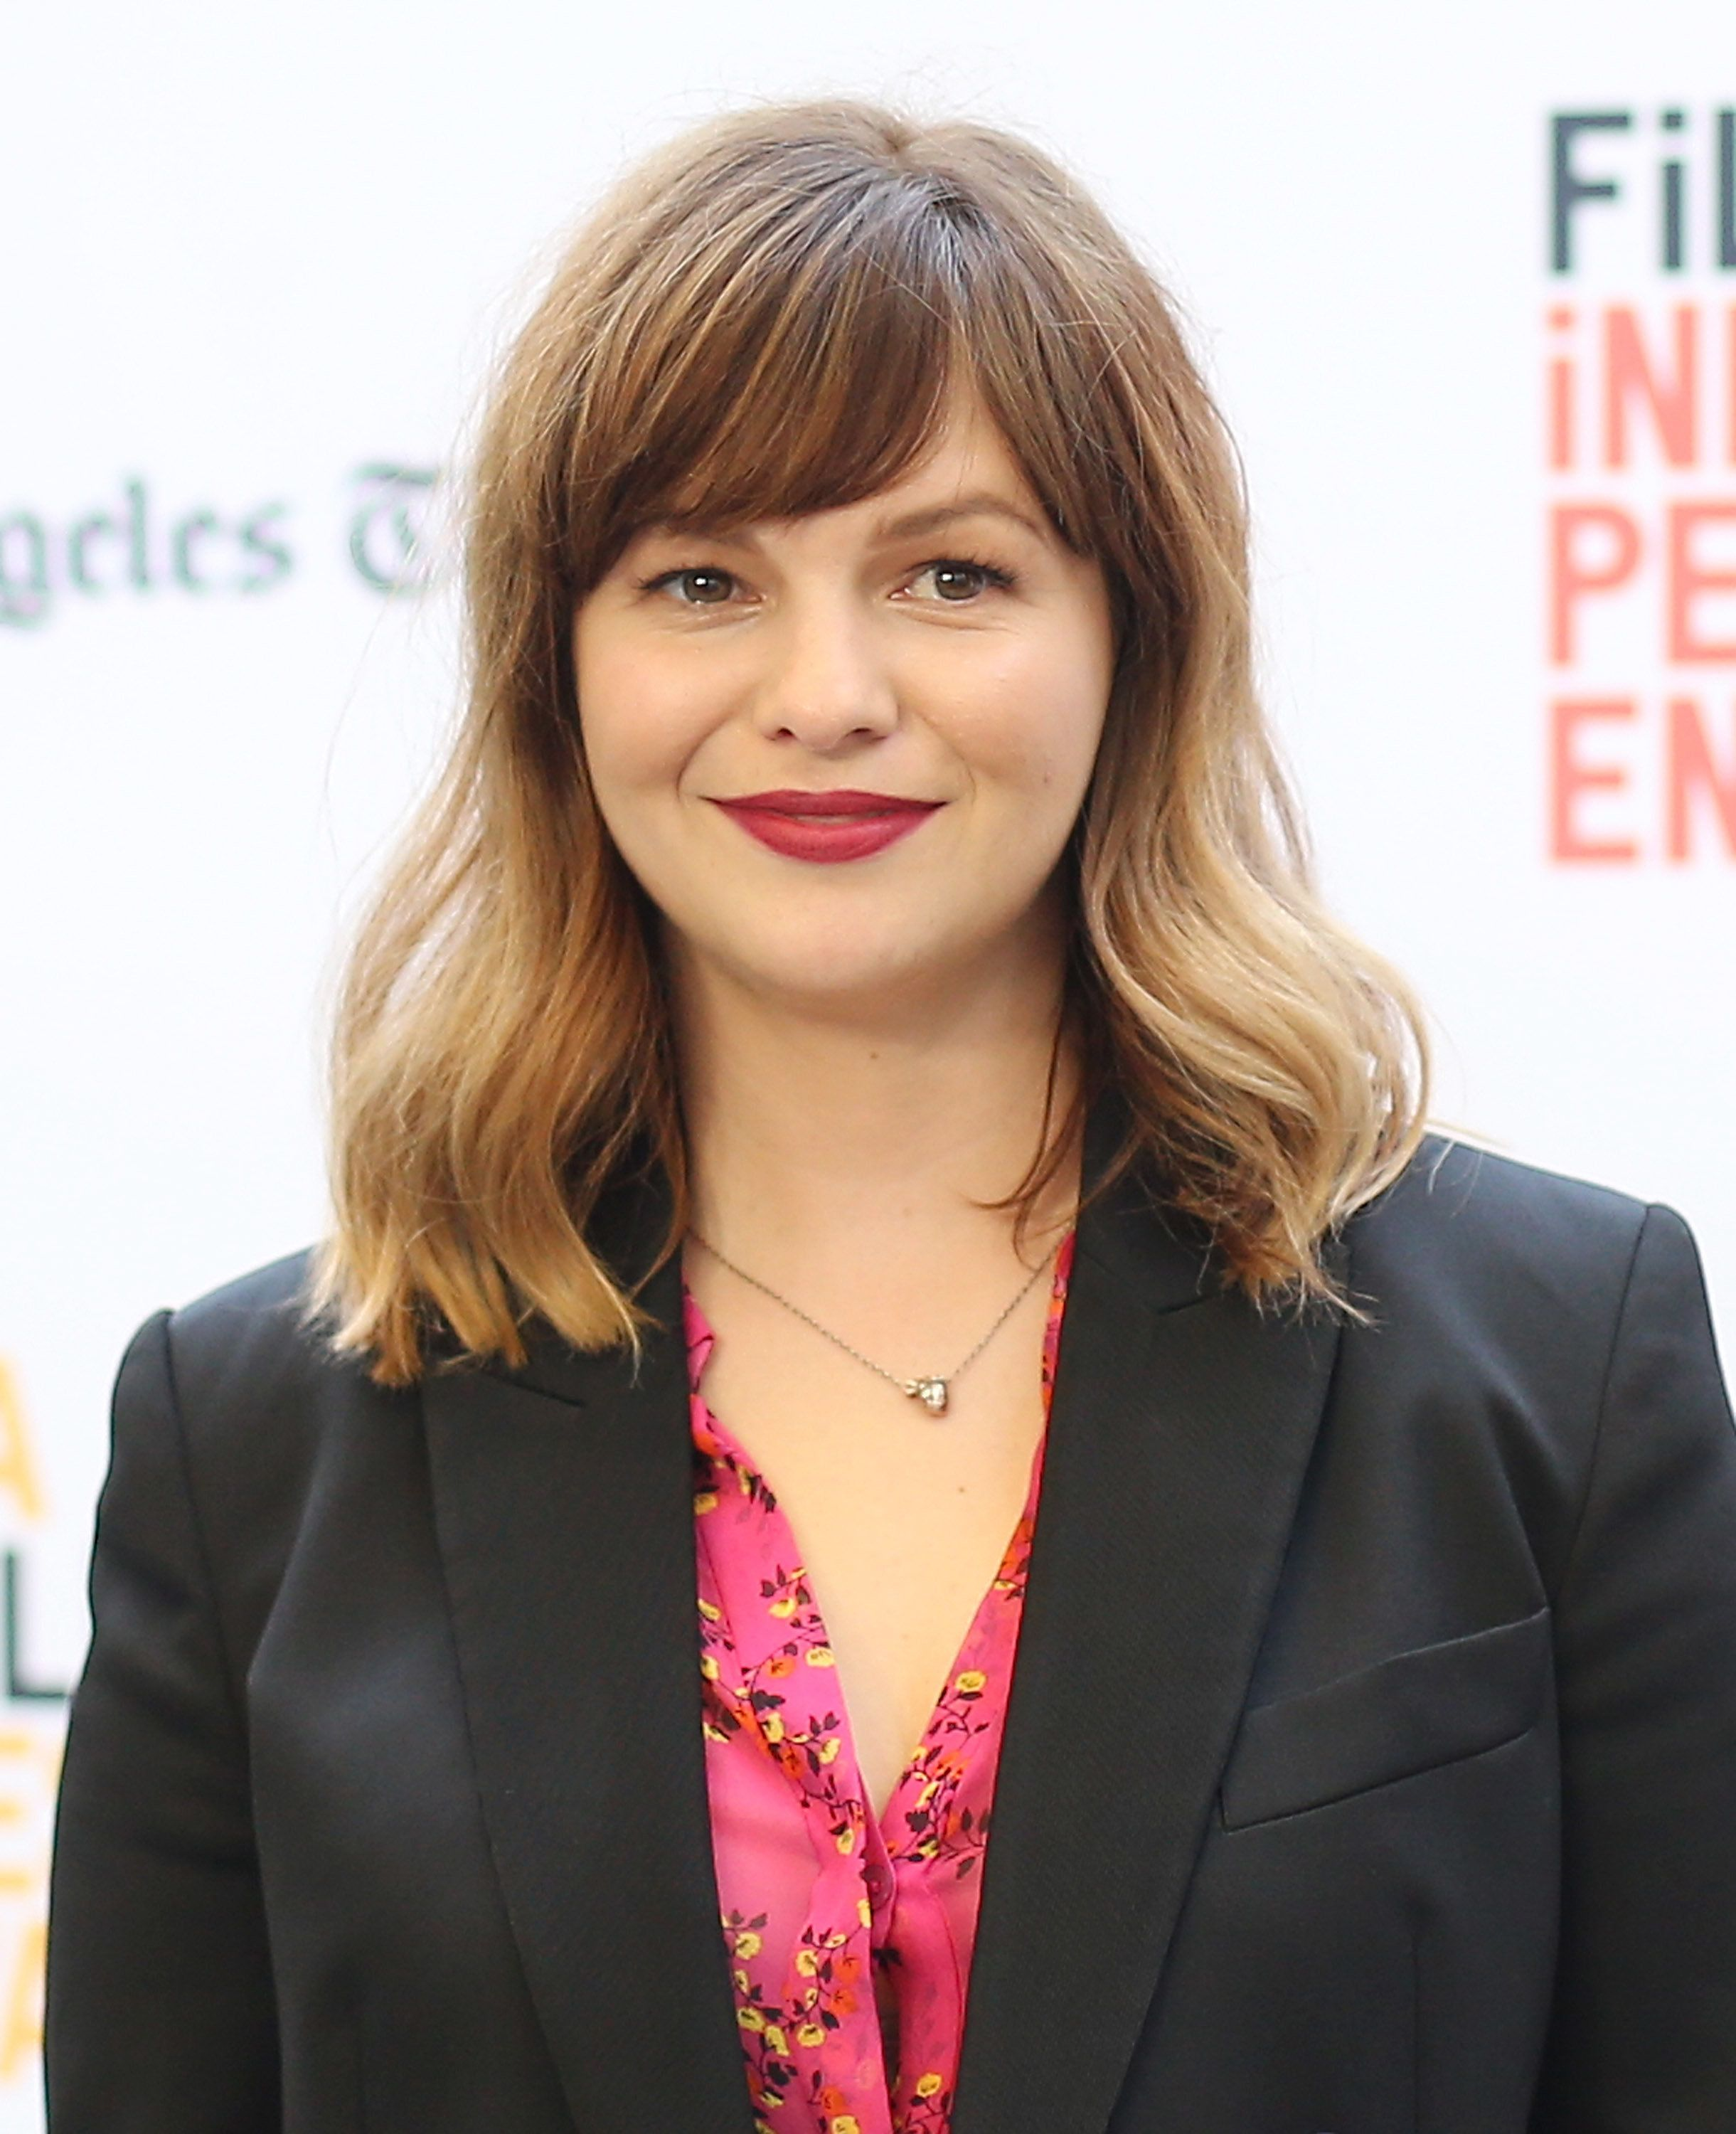 LOS ANGELES, CA - JUNE 03:  Amber Tamblyn arrives at the LA Film Festival premiere of Tangerine Entertainment's 'Paint It Black' held at Bing Theater At LACMA on June 3, 2016 in Los Angeles, California.  (Photo by Michael Tran/FilmMagic)